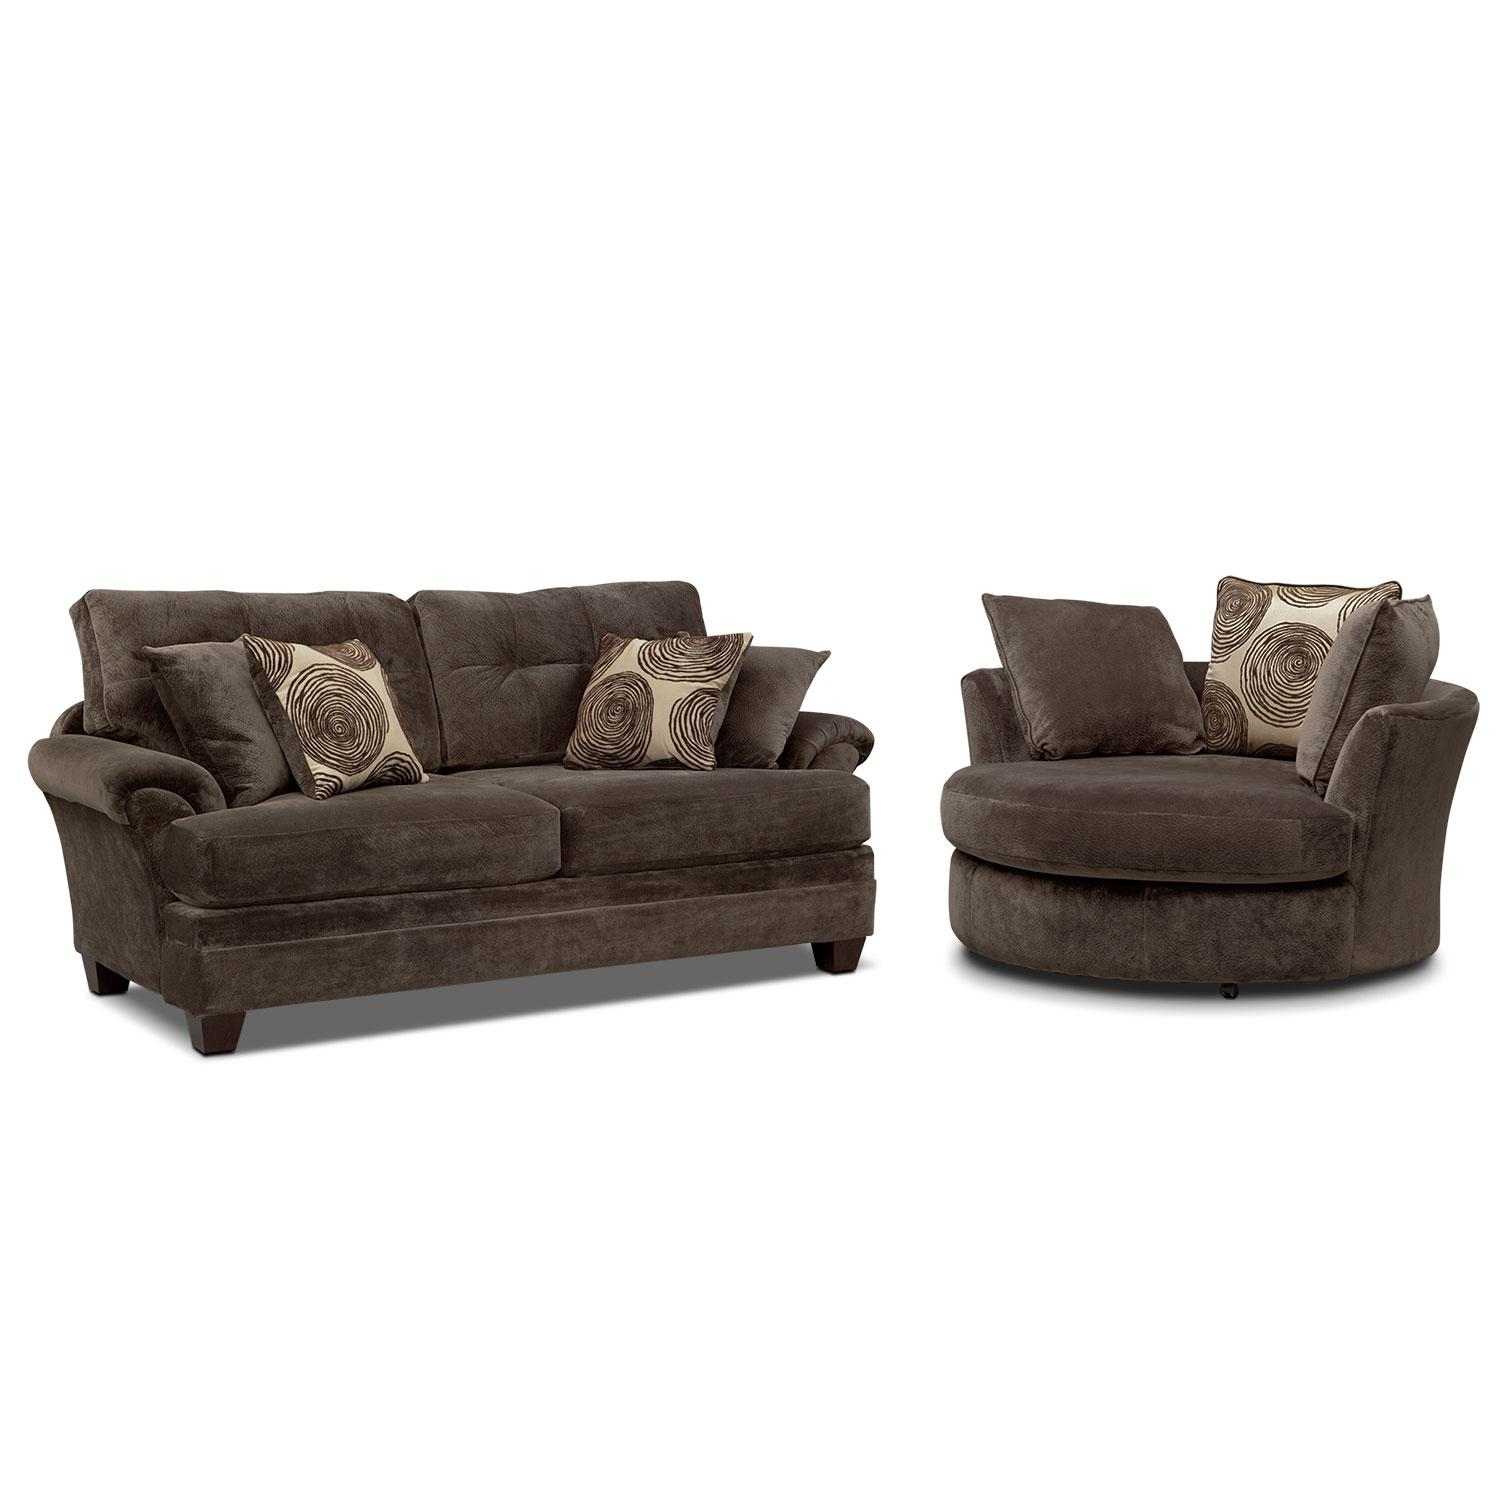 Cordelle Swivel Chair – Chocolate | Value City Furniture For Swivel Sofa Chairs (Image 4 of 20)